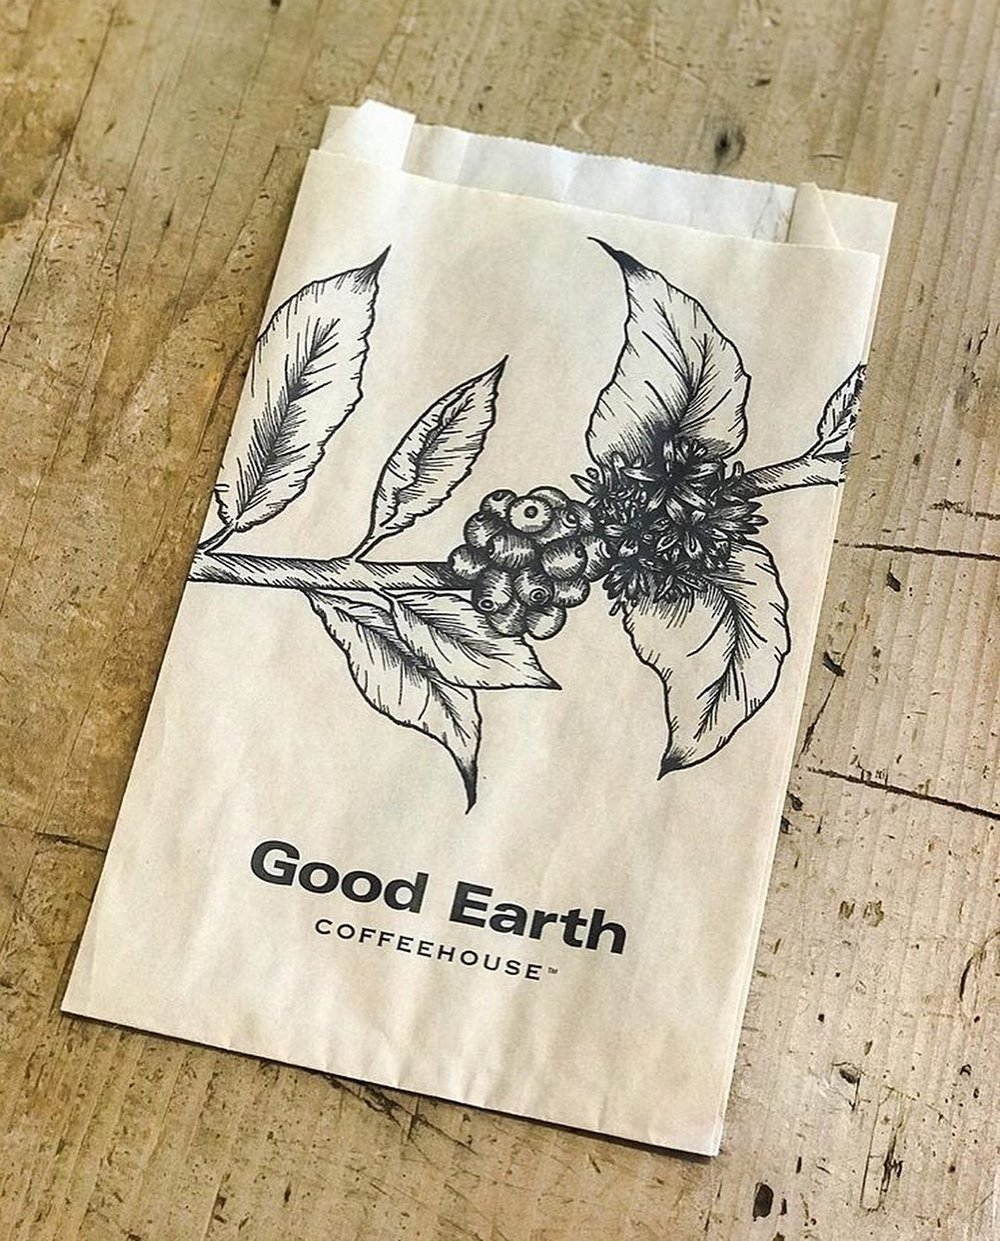 Good Earth - Brand and Product Illustrations[more coming soon]